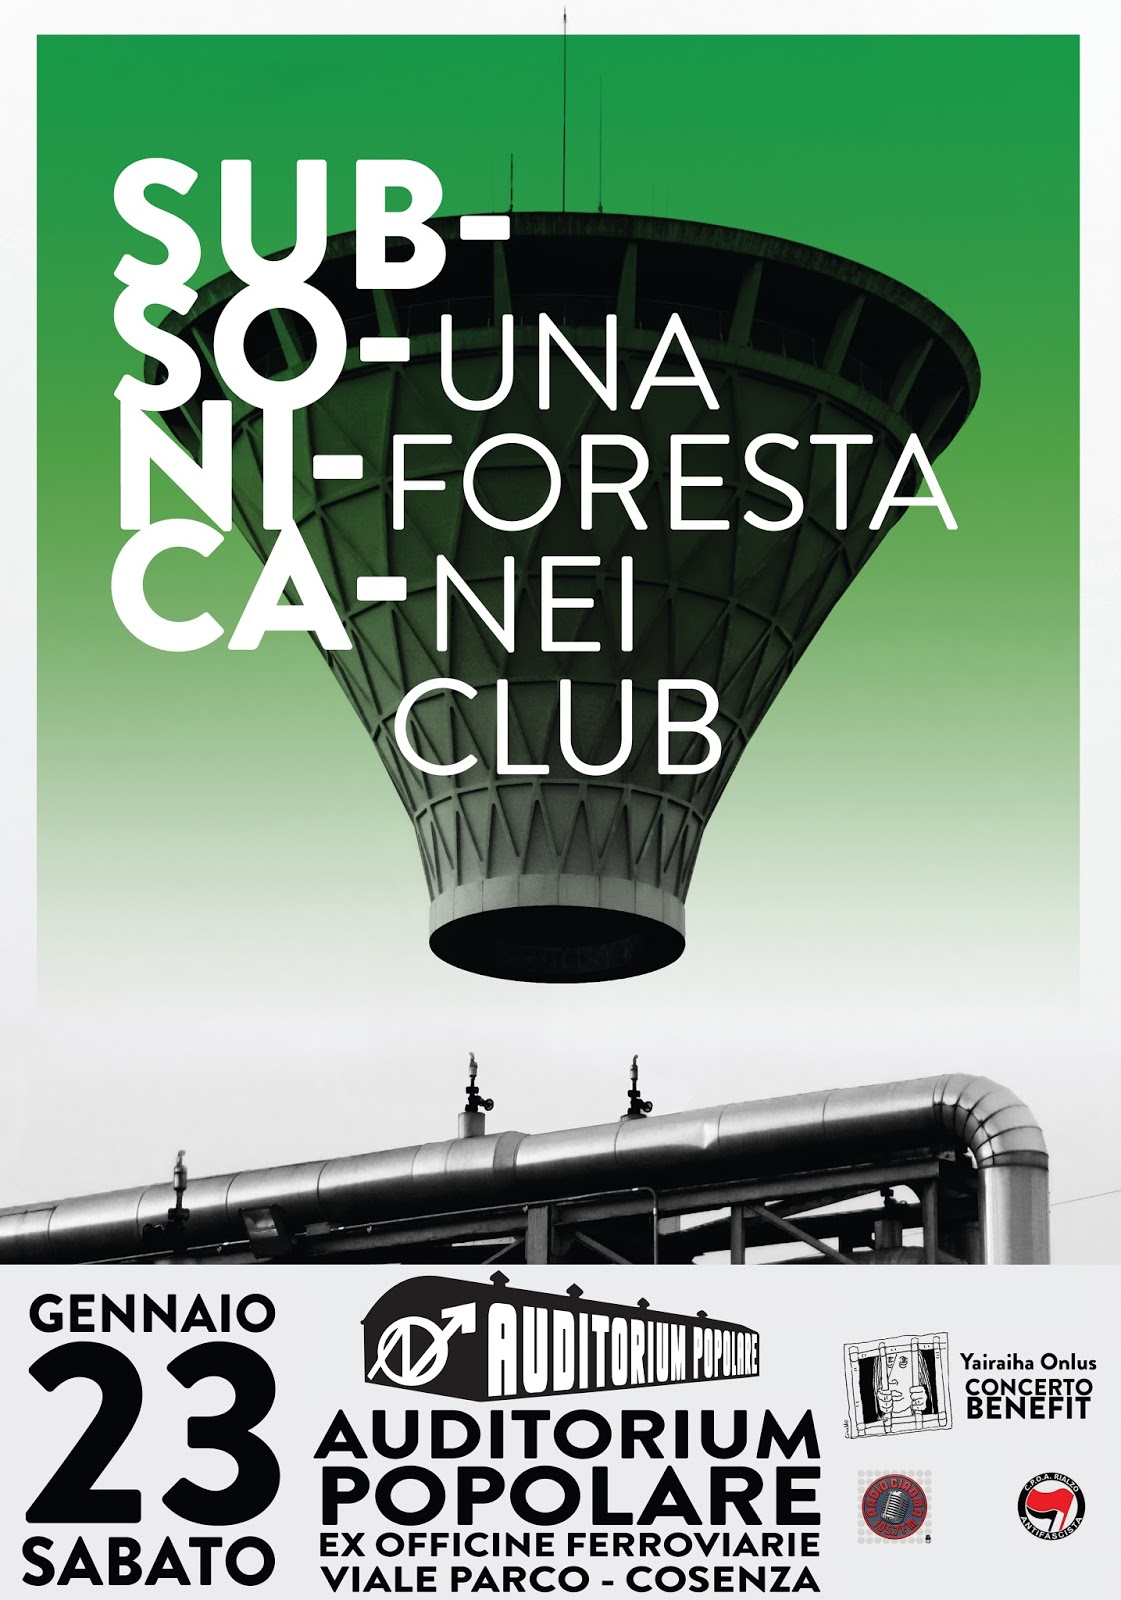 SUBSONICA 70X100